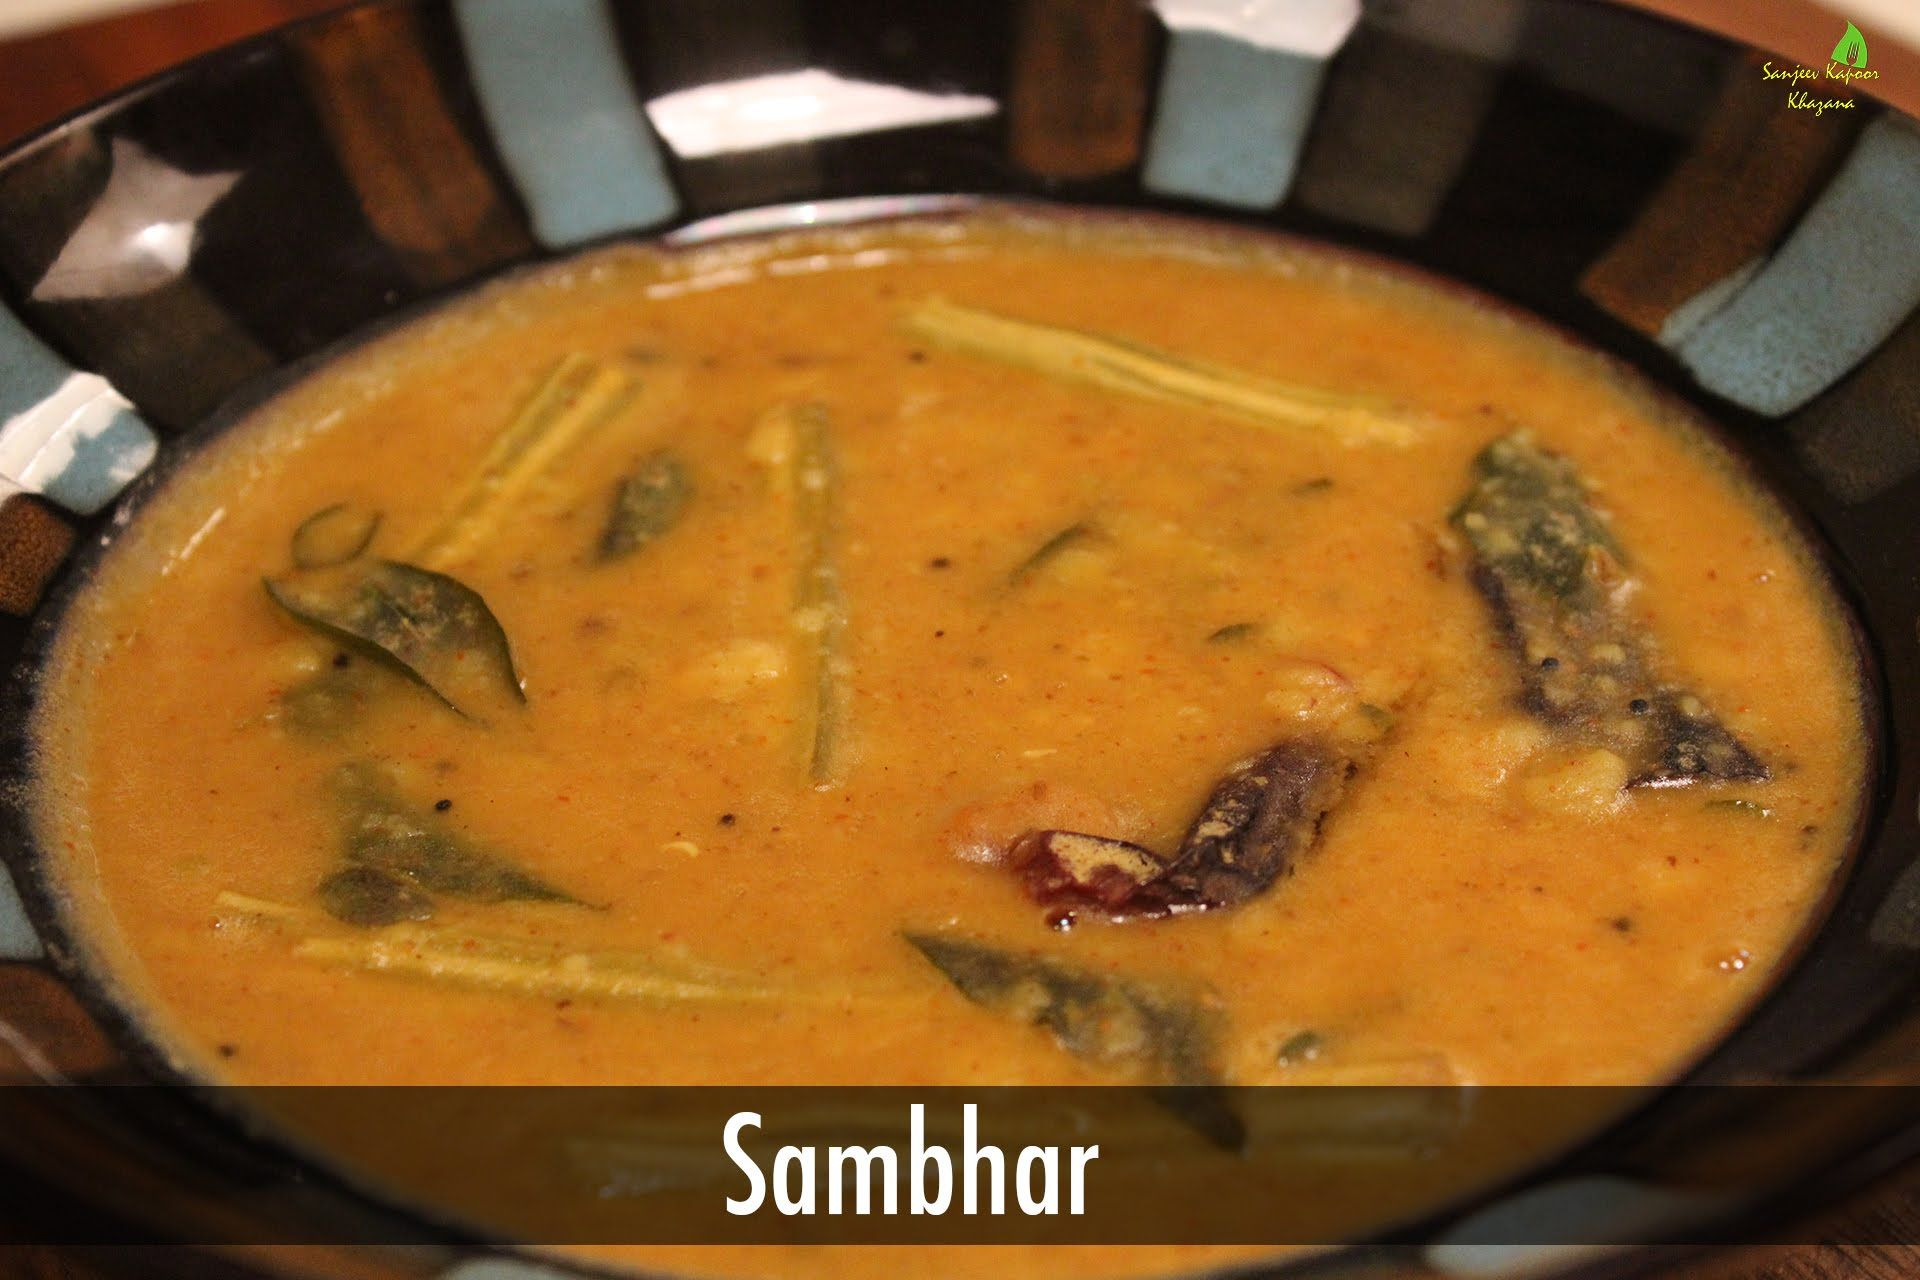 Sambhar south indian recipes sanjeev kapoor khazana yummvi sambhar south indian recipes sanjeev kapoor khazana forumfinder Gallery